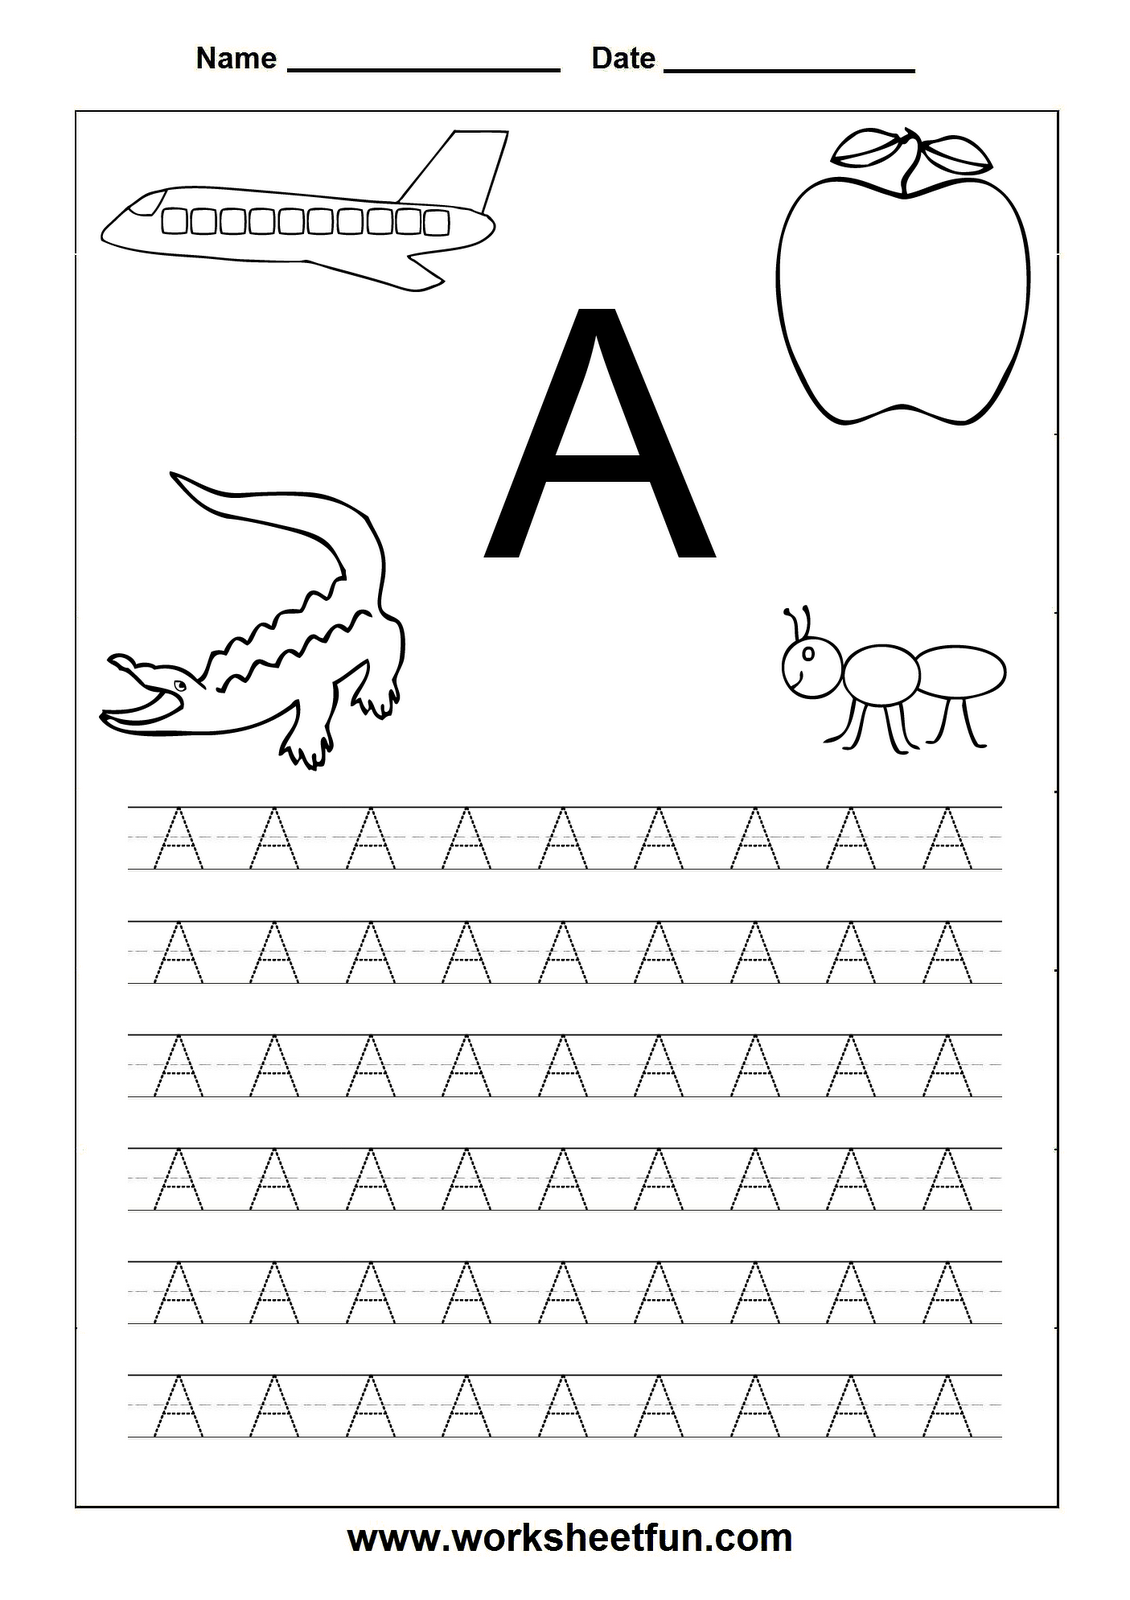 Worksheet Preschool Alphabet Worksheets 1000 images about toddler worksheets on pinterest alphabet preschool and preschool